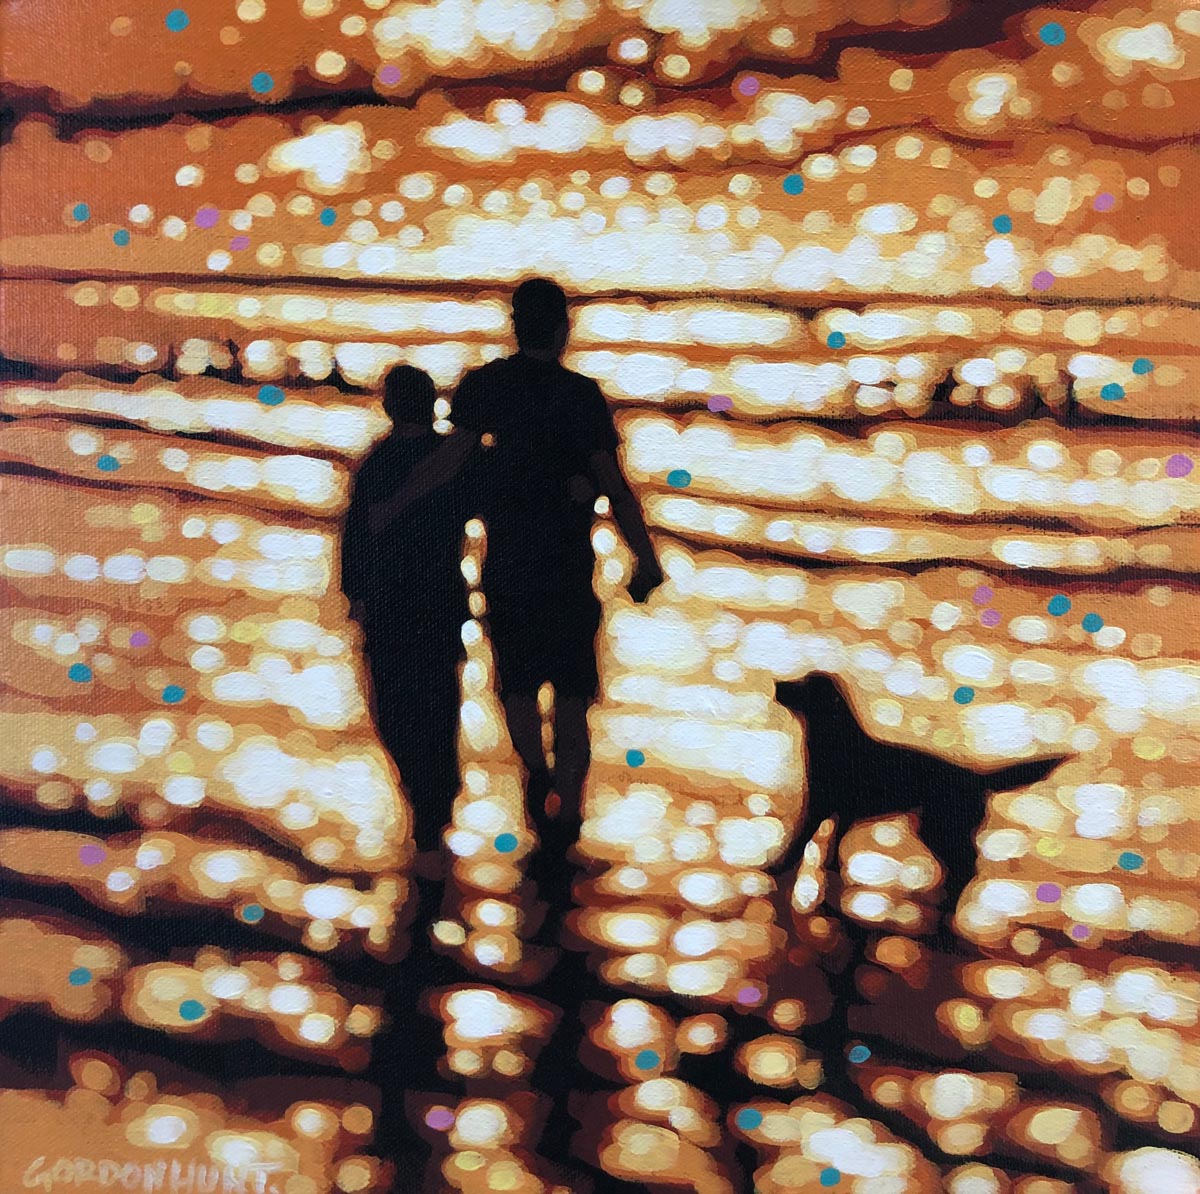 Gordan Hunt-The Evening walk-Throw it!-Original Art-Acrylic